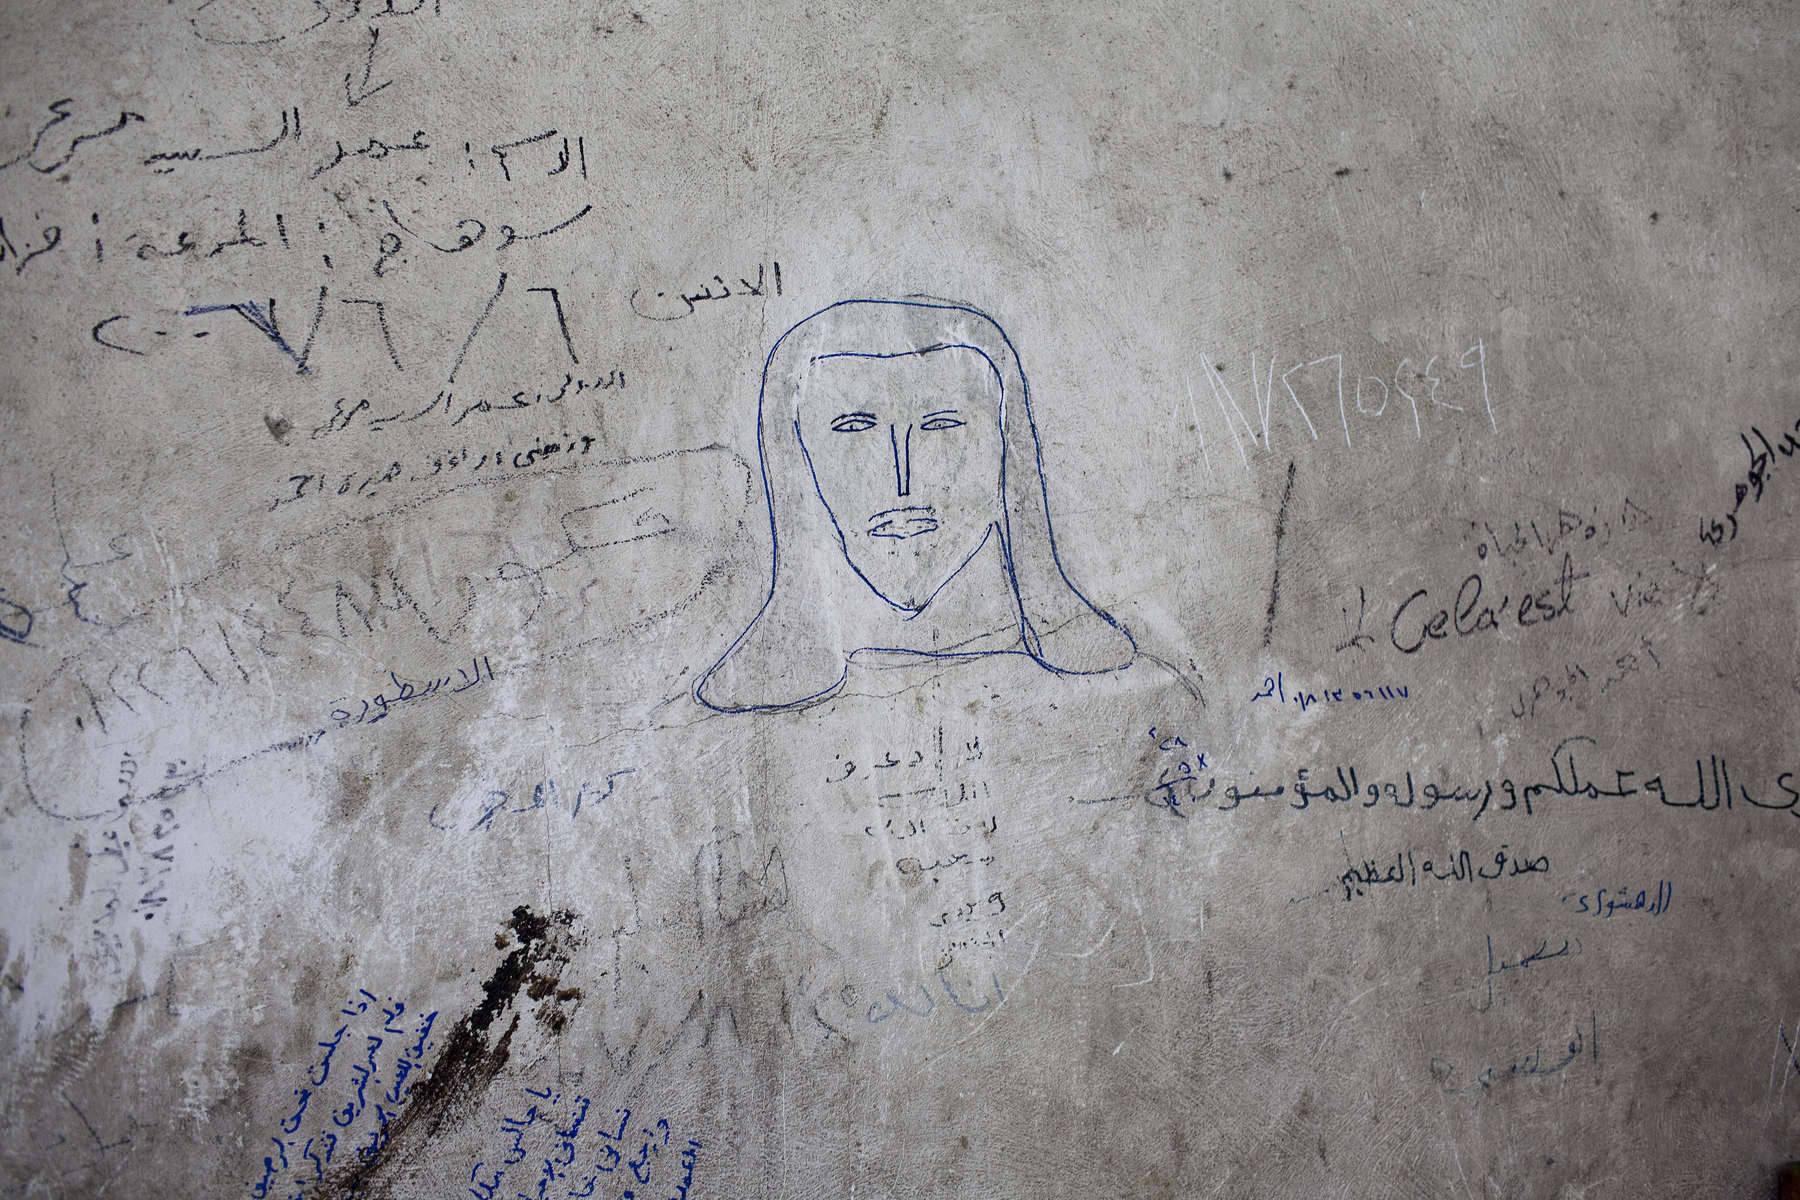 "A picture of Jesus Christ drawn on the wall of a home in Moqqatam.Moqqatam is a suburb on the edge of Cairo and home to a people known as the Zabaleen, said to be the world's greatest waste recyclers. The Zabaleen, which means plainly enough, ""the garbage collectors"", pick up around 4,000 tons of Cairo's waste each day. American researchers have shown that the Zabaleen recycle 85% of this garbage into something useful: a higher rate than anywhere else on the planet. The men do two shifts leaving about 4am and again around 9am. The rubbish is taken back to Moqqatam for the women to sit in and sort through. The organic waste is fed to livestock (the Zabaleen are originally swine herders), the rest sorted for recycling. The future of the Zabaleen is uncertain: if the Cairo authorities get their way, this community of around 25,000 Coptic Christians living in a Muslim country will be gone, and with it, their unique lifestyle."